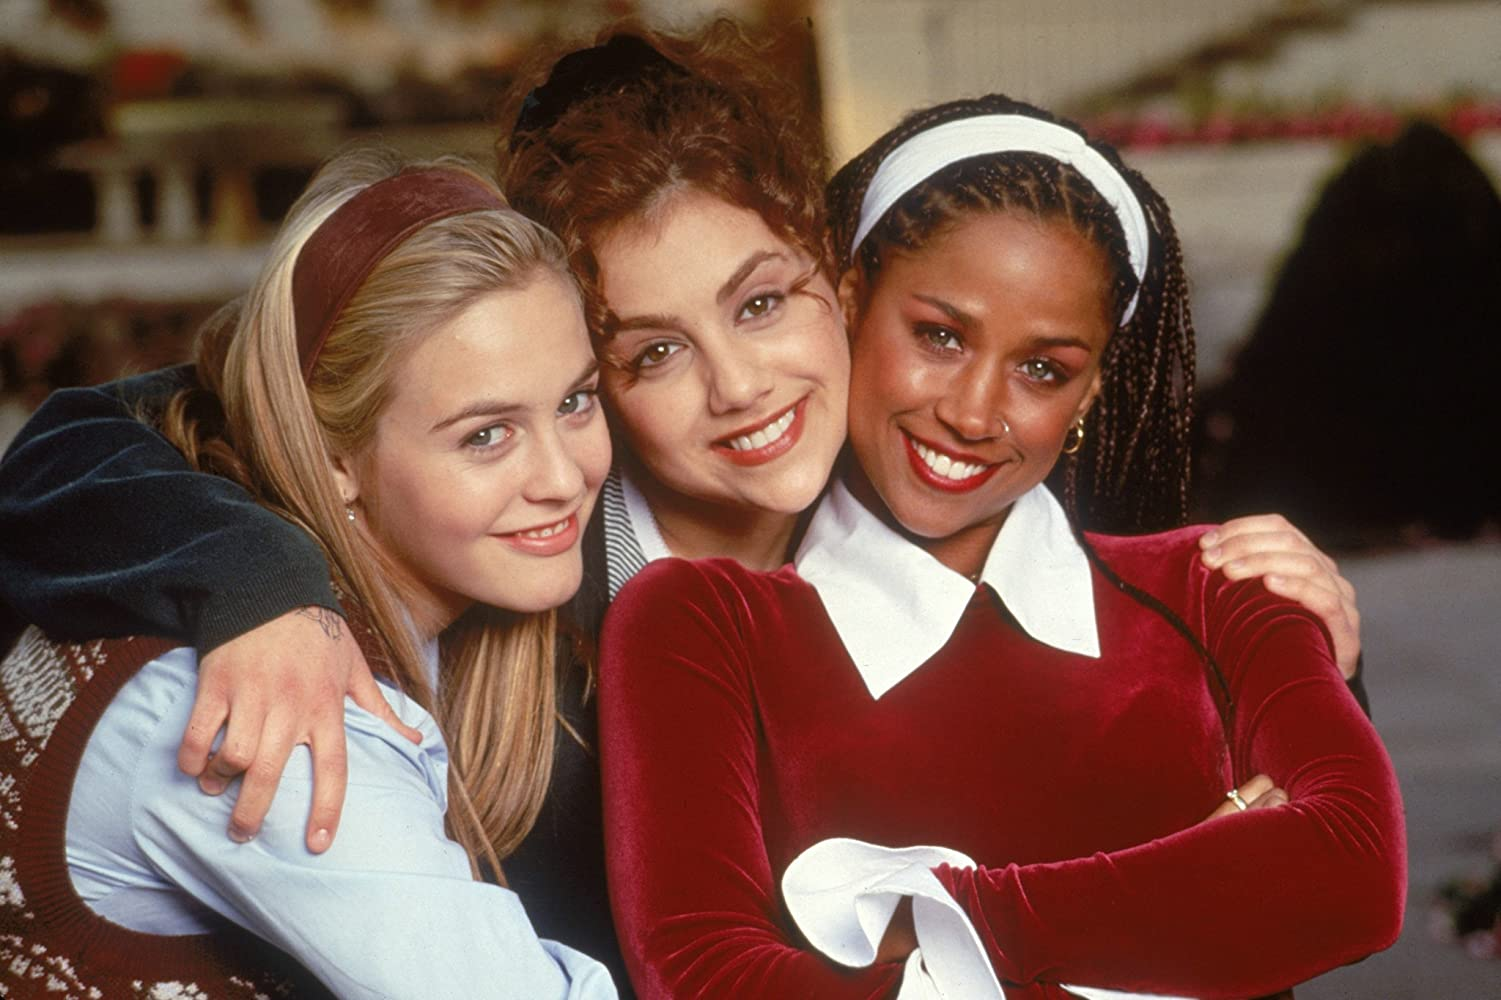 The girls from clueless